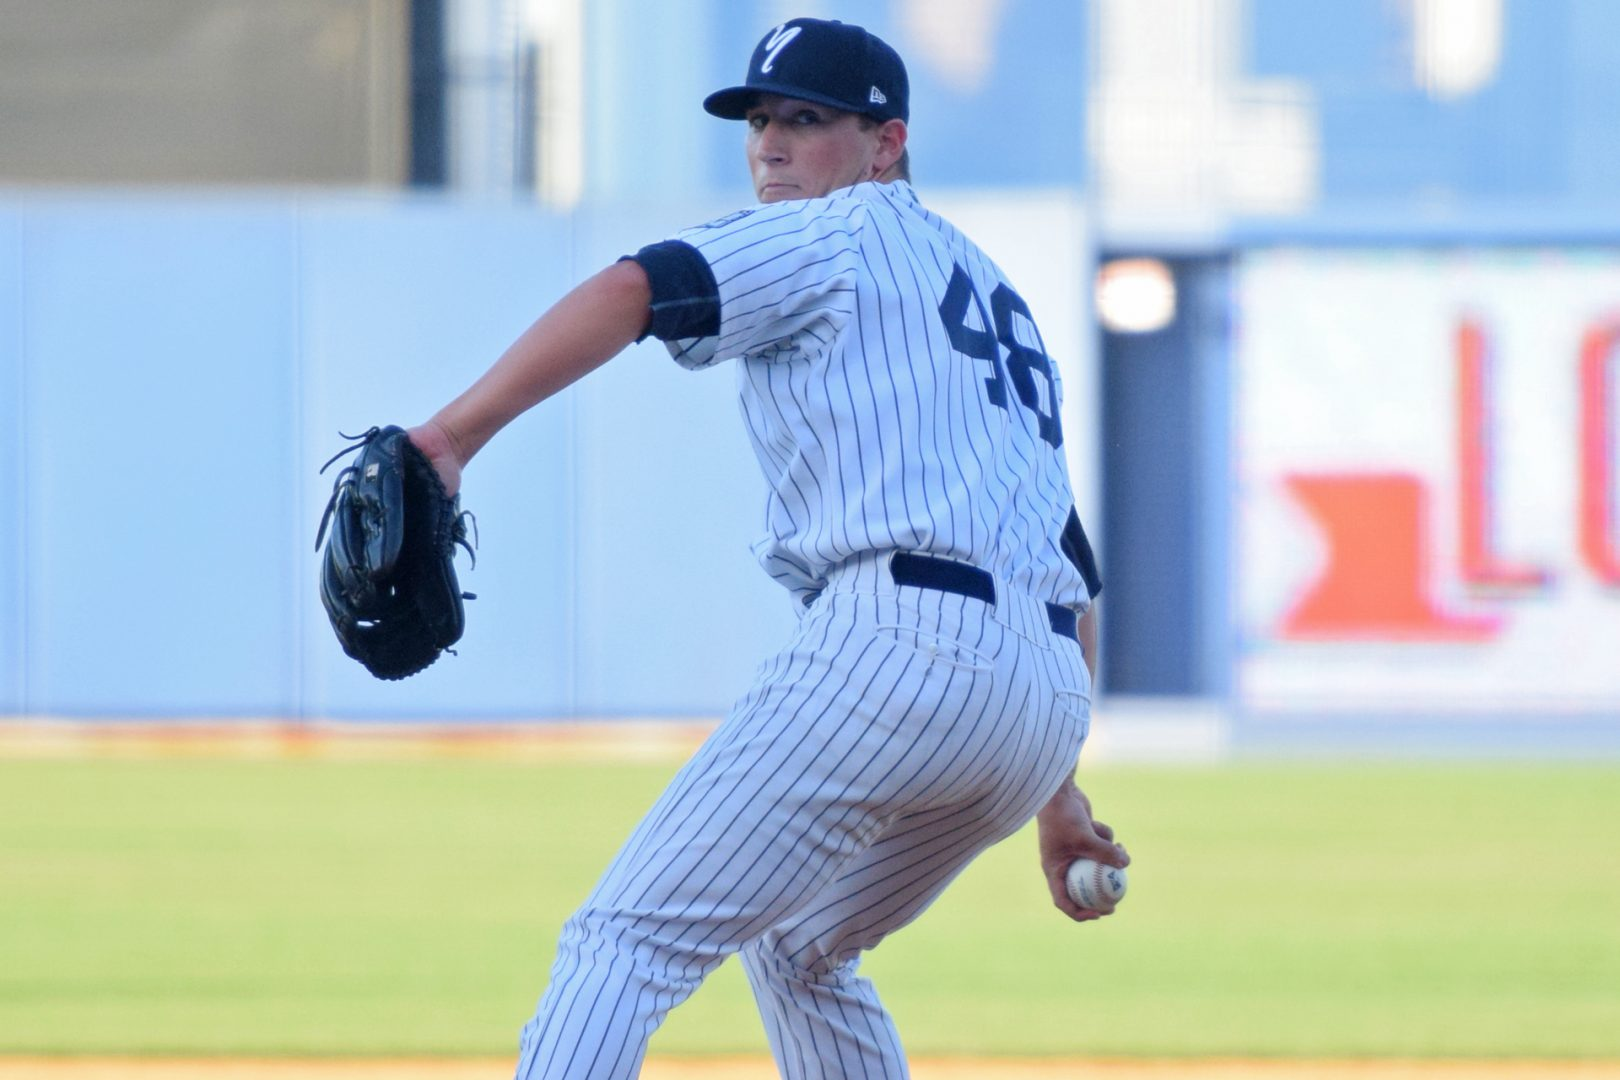 RHP Taylor Widener took over on the mound for the 8th inning. (Robert M. Pimpsner)